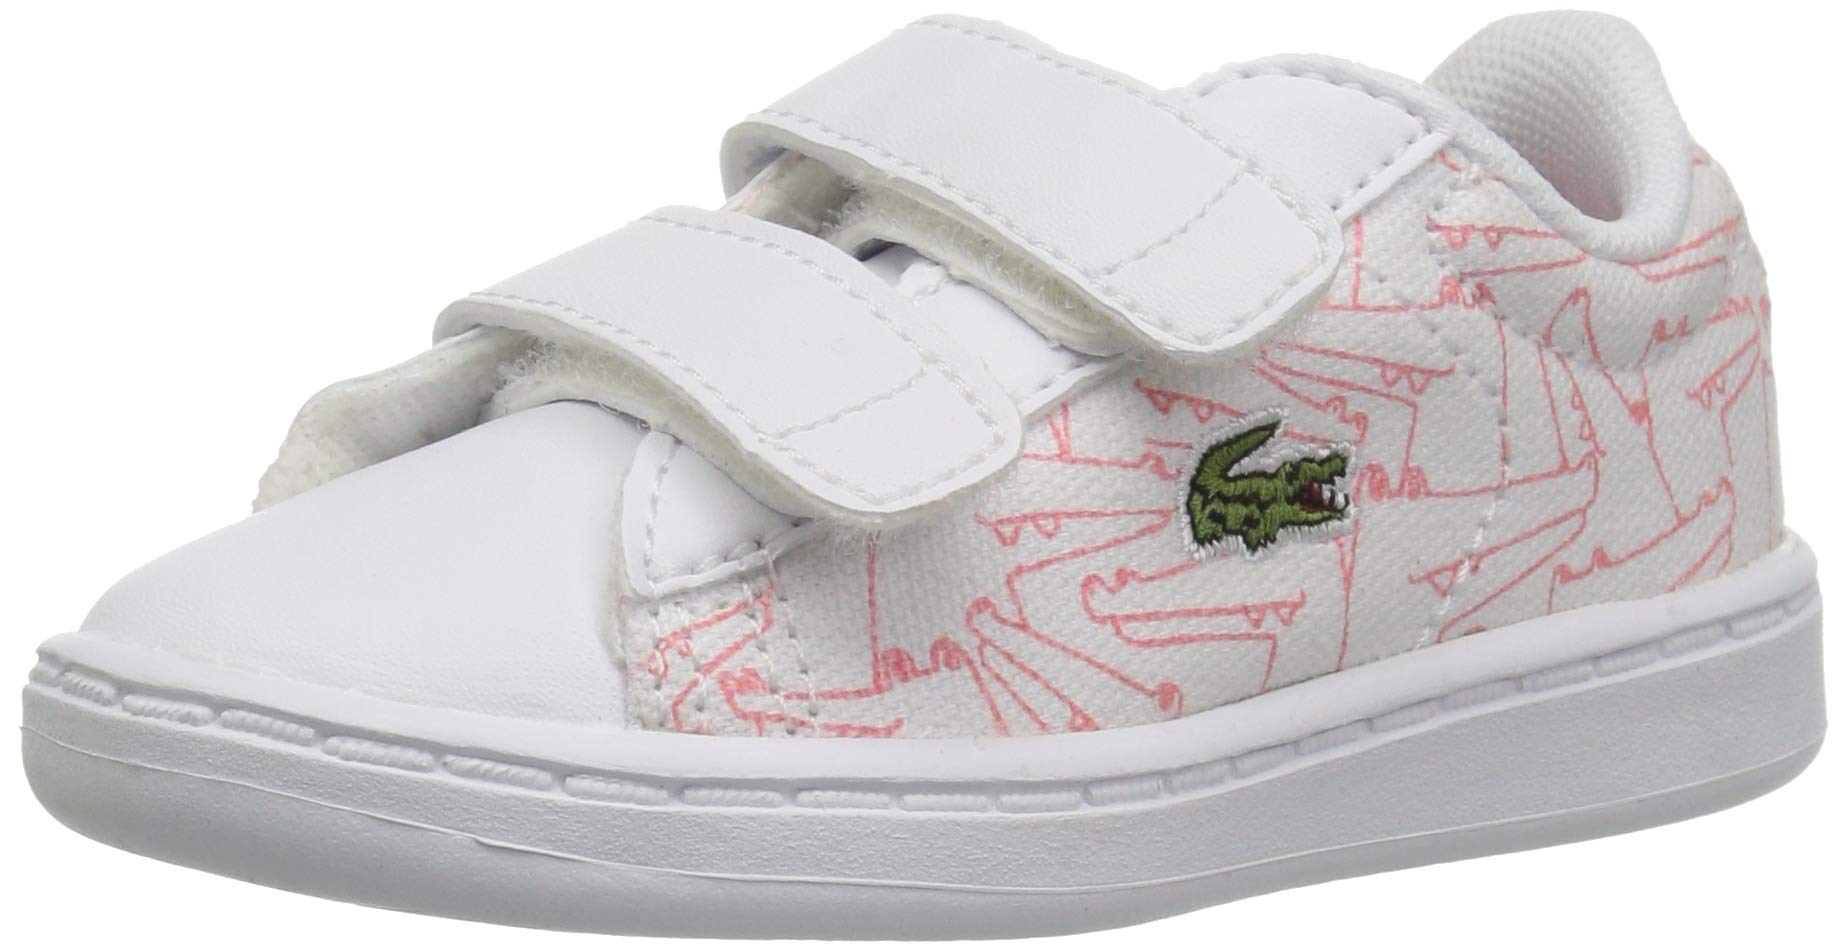 Lacoste Baby Carnaby EVO Sneaker, White/Pink